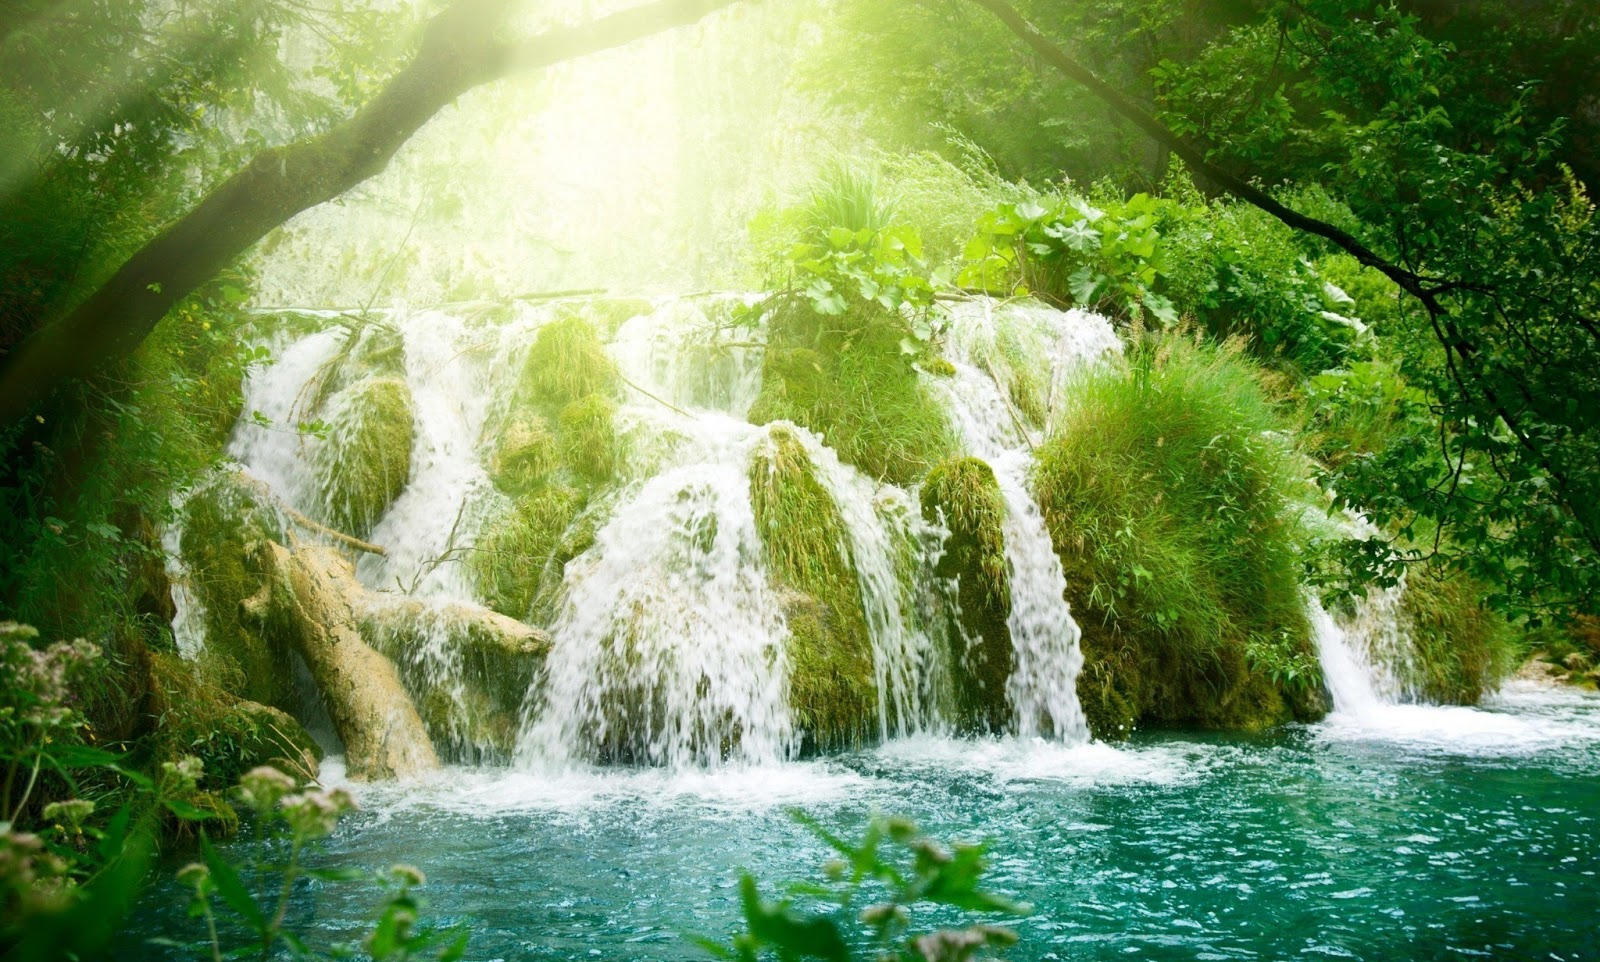 AMAZING NATURE HD WALLPAPERS 1080p ~ HD WALLPAPERS